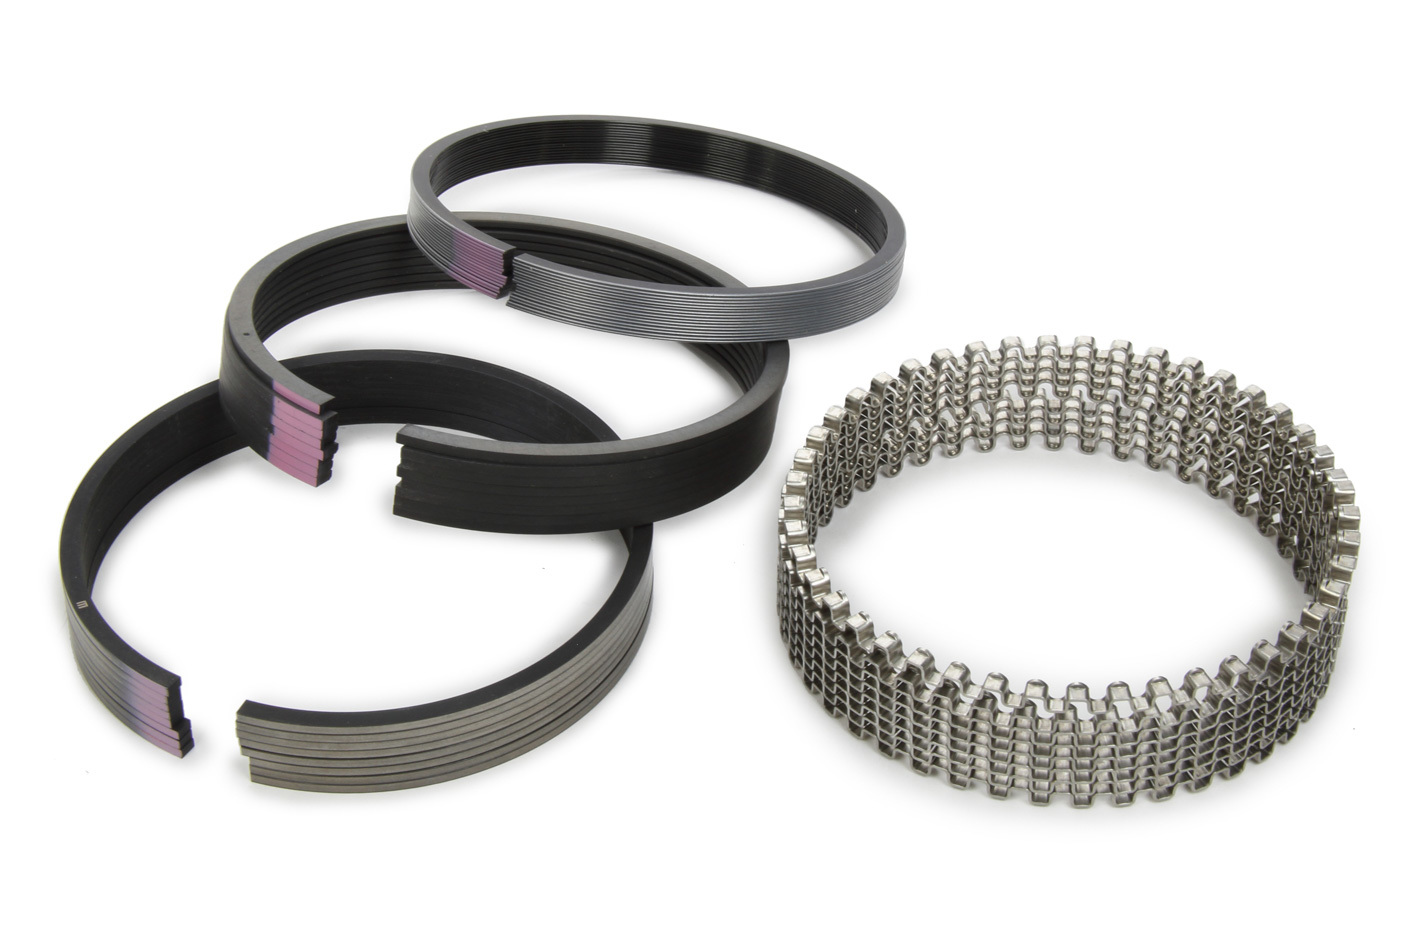 Michigan 77 40564CP.040 Piston Rings, Original, 4.040 in Bore, 5/64 x 5/64 x 3/16 in Thick, Standard Tension, Moly, 8 Cylinder, Kit